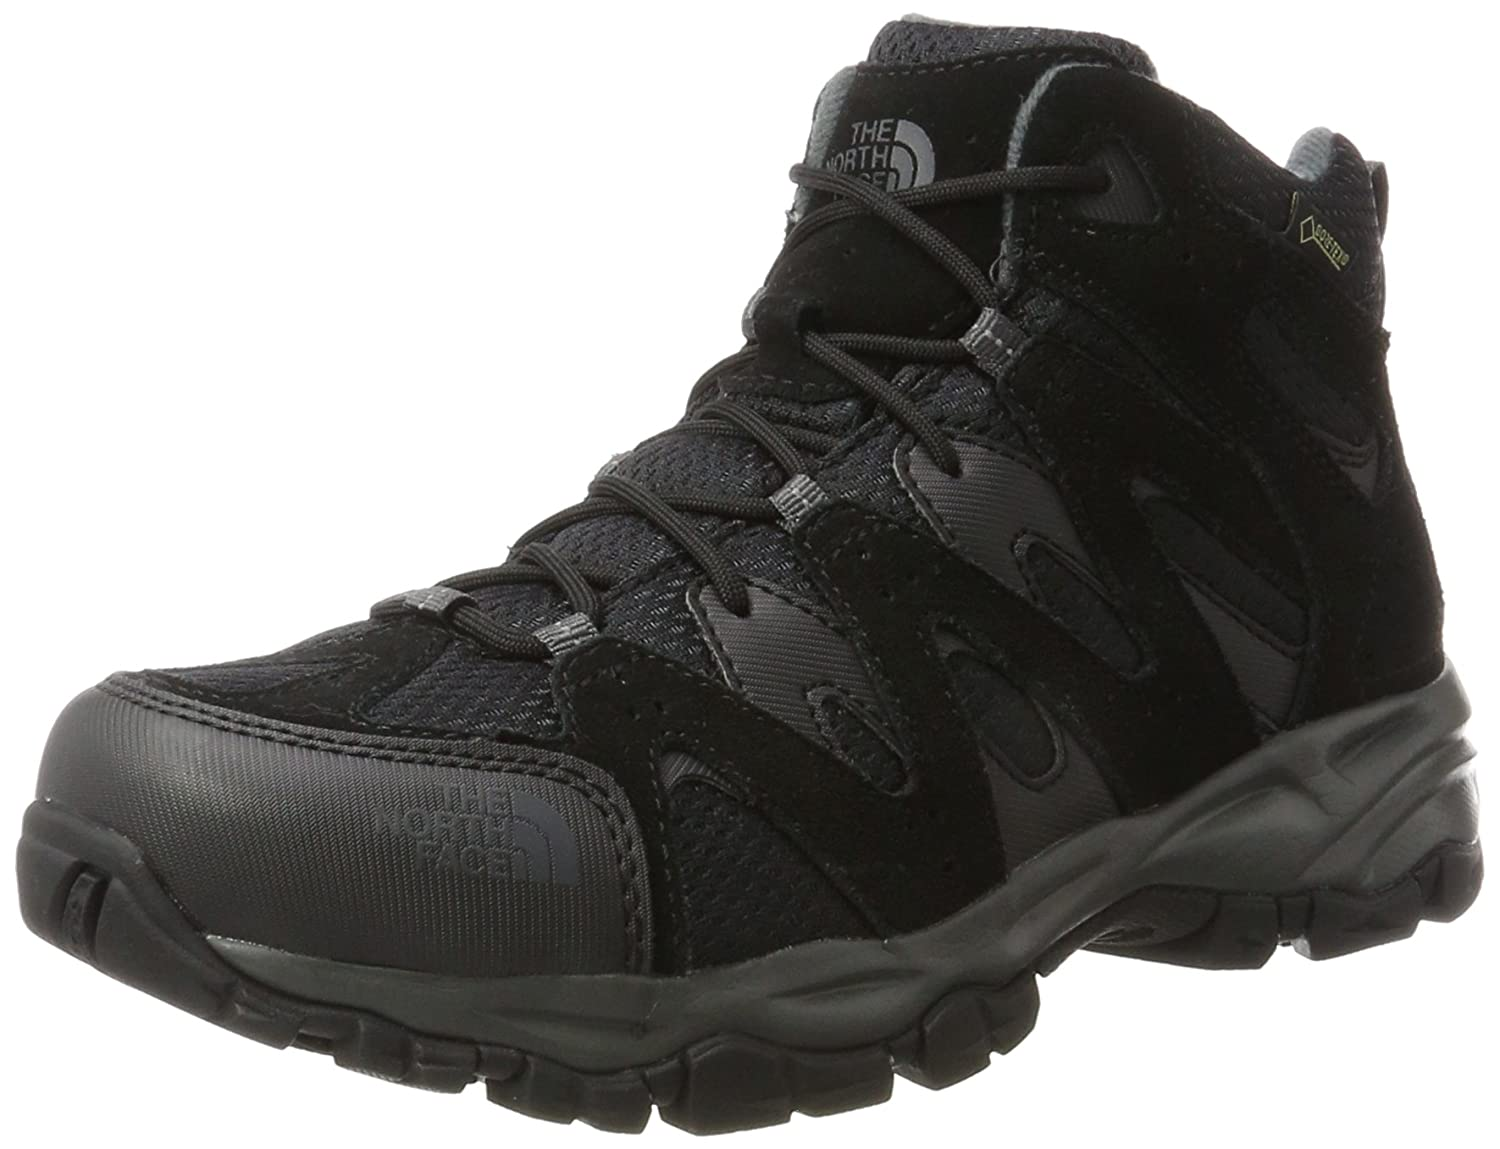 The North Face Storm Hike Mid Gore-Tex EU, Botas de Senderismo para Hombre 44.5 EU|Varios Colores (Tnf Black/Dark Shadow Grey)